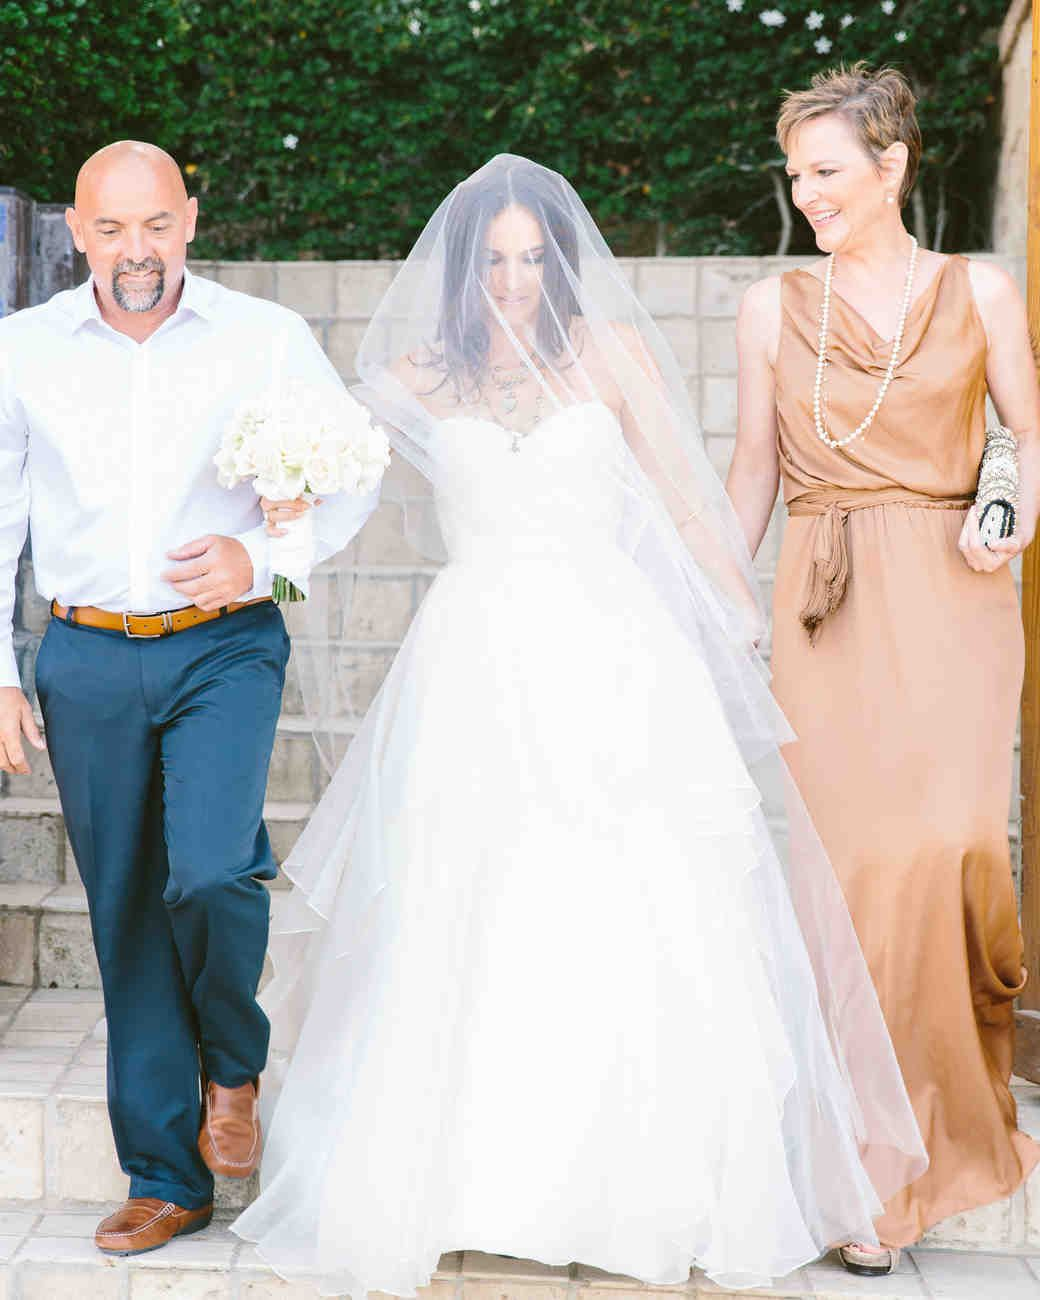 At This Intimate Destination Wedding In Cabo San Lucas The Bride Walked Down Aisle With Her Dad And Mom Who Looked Lovely An Easygoing Floor Length